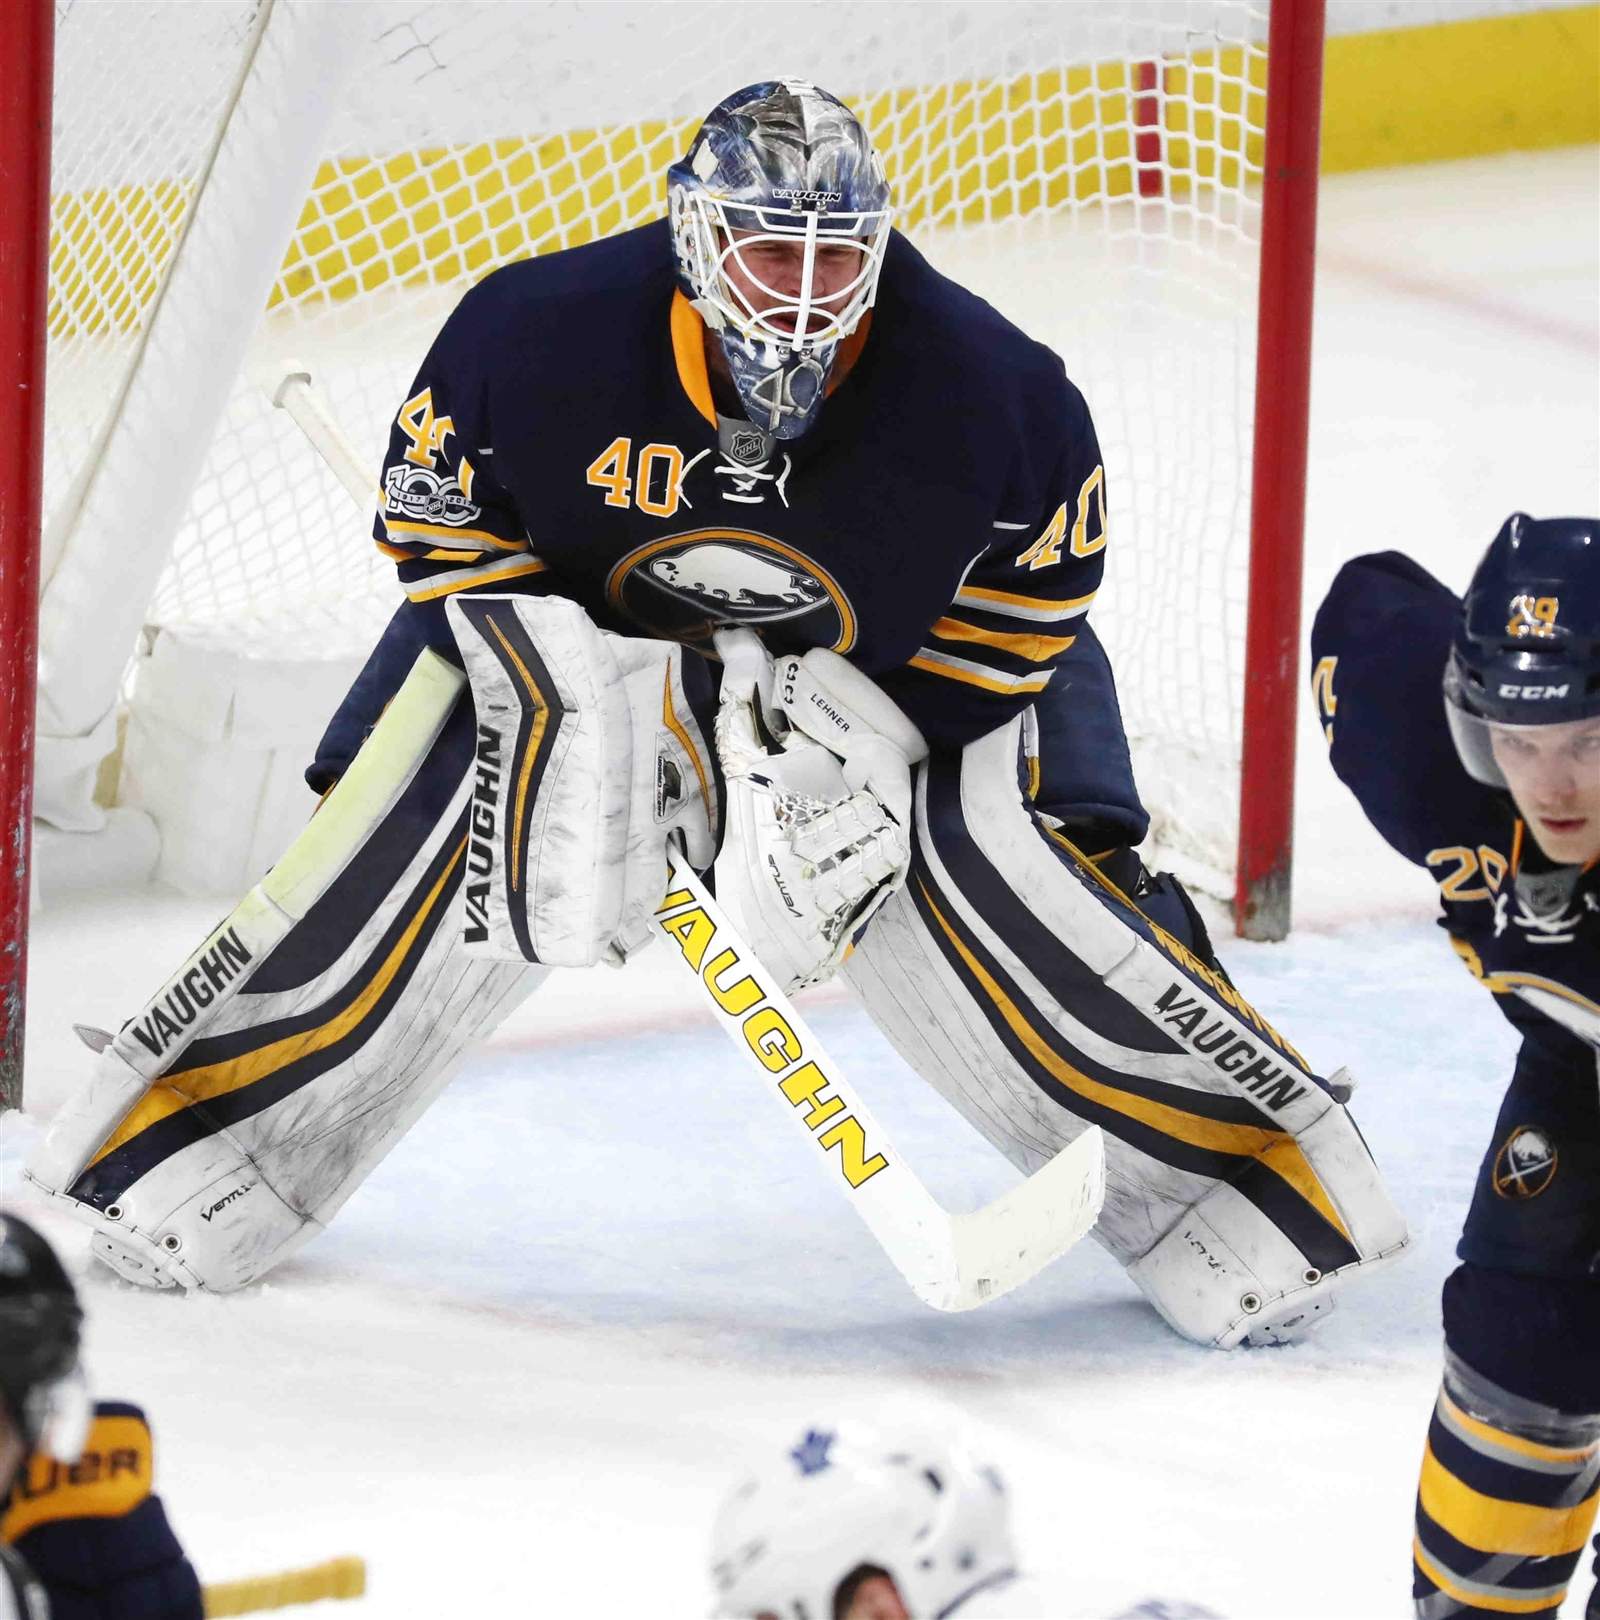 Robin Lehner says the Sabres have to get back to accountability on the ice. (James P. McCoy/Buffalo News)